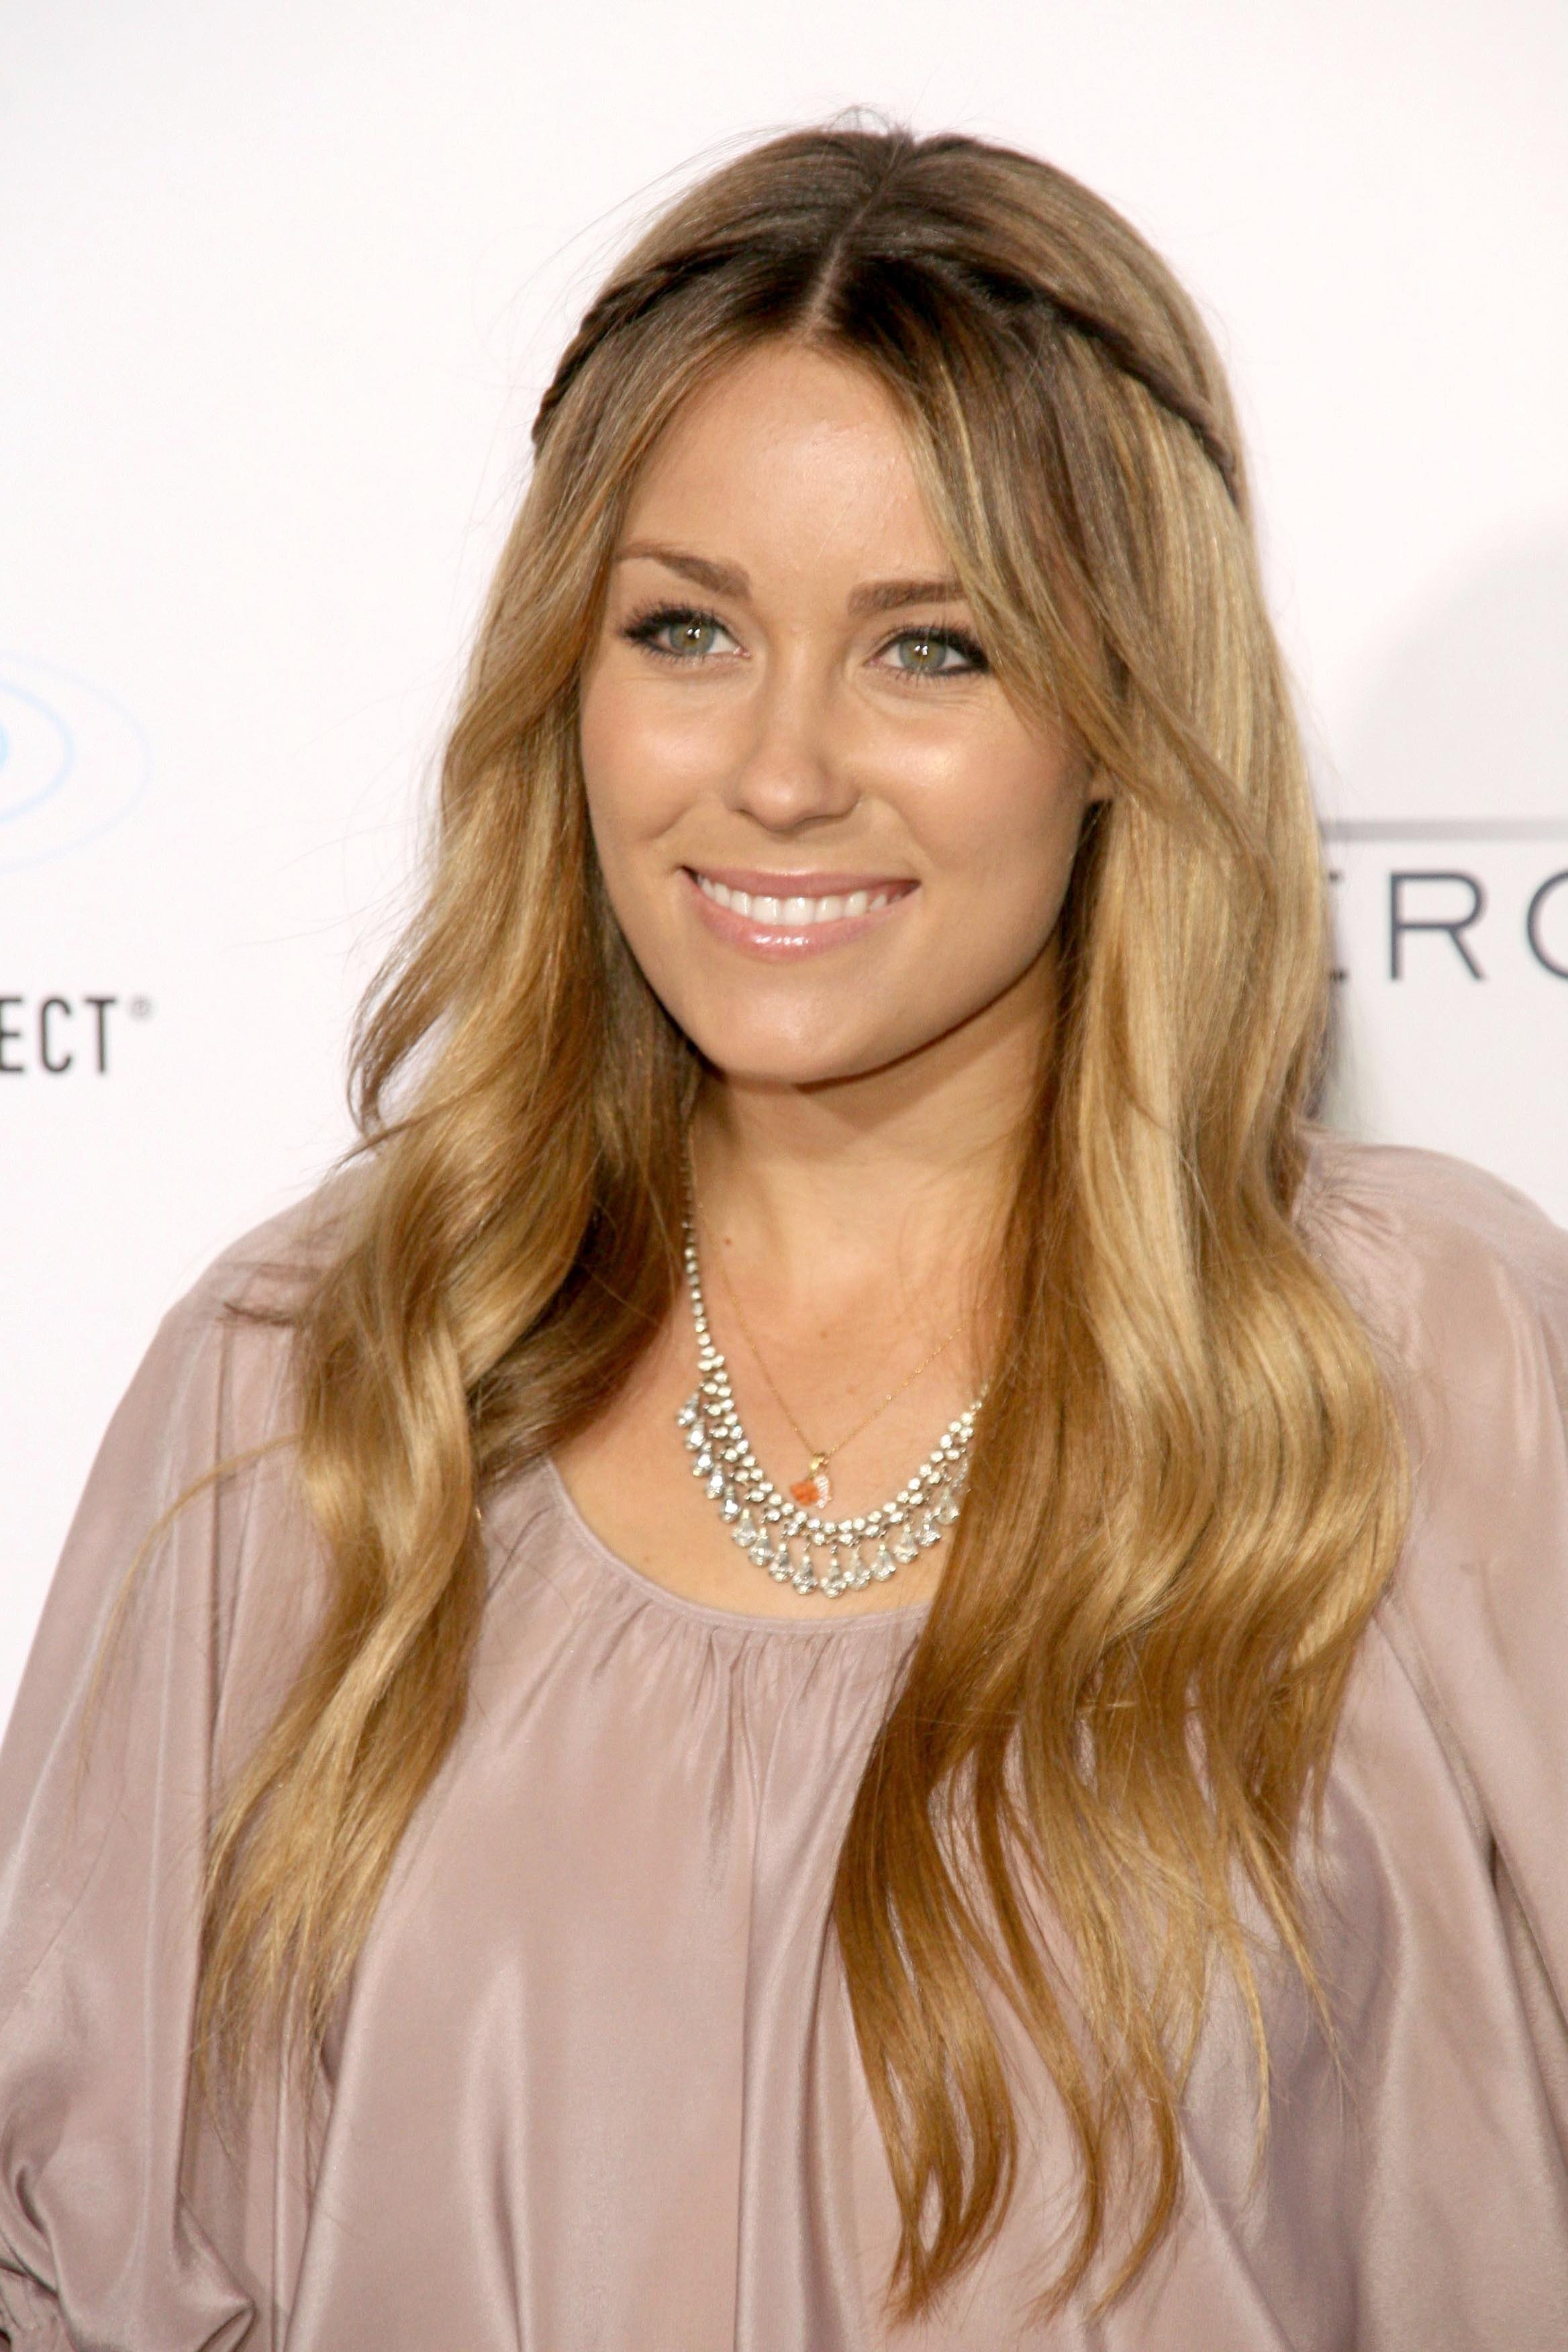 15 of Our Favorite Lauren Conrad Hairstyles